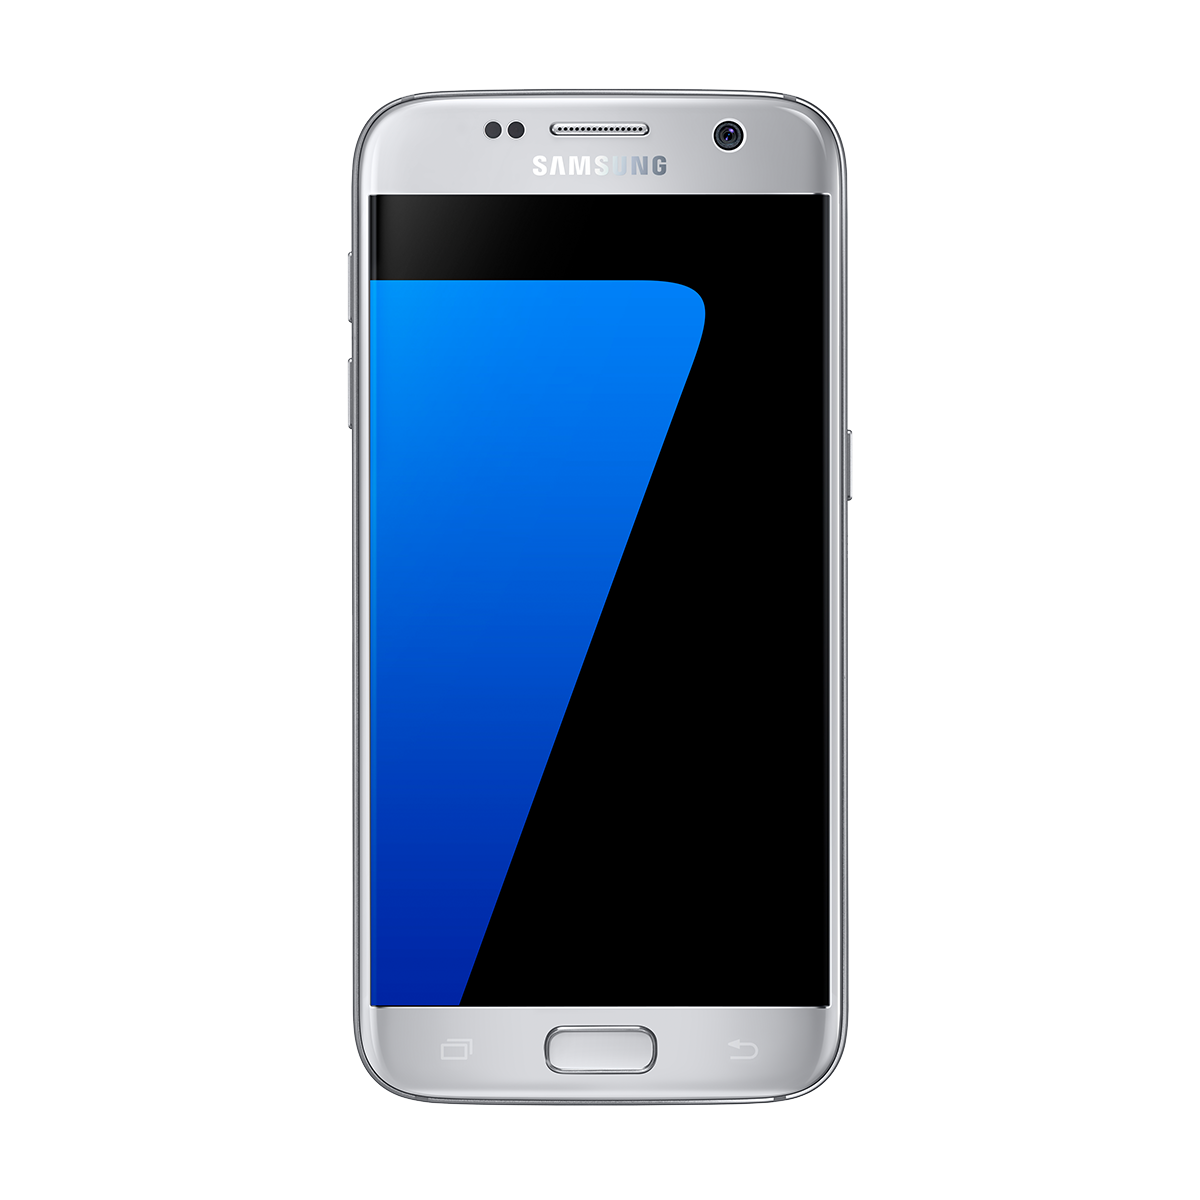 Samsung galaxy s7 png. S videotron mobile phone